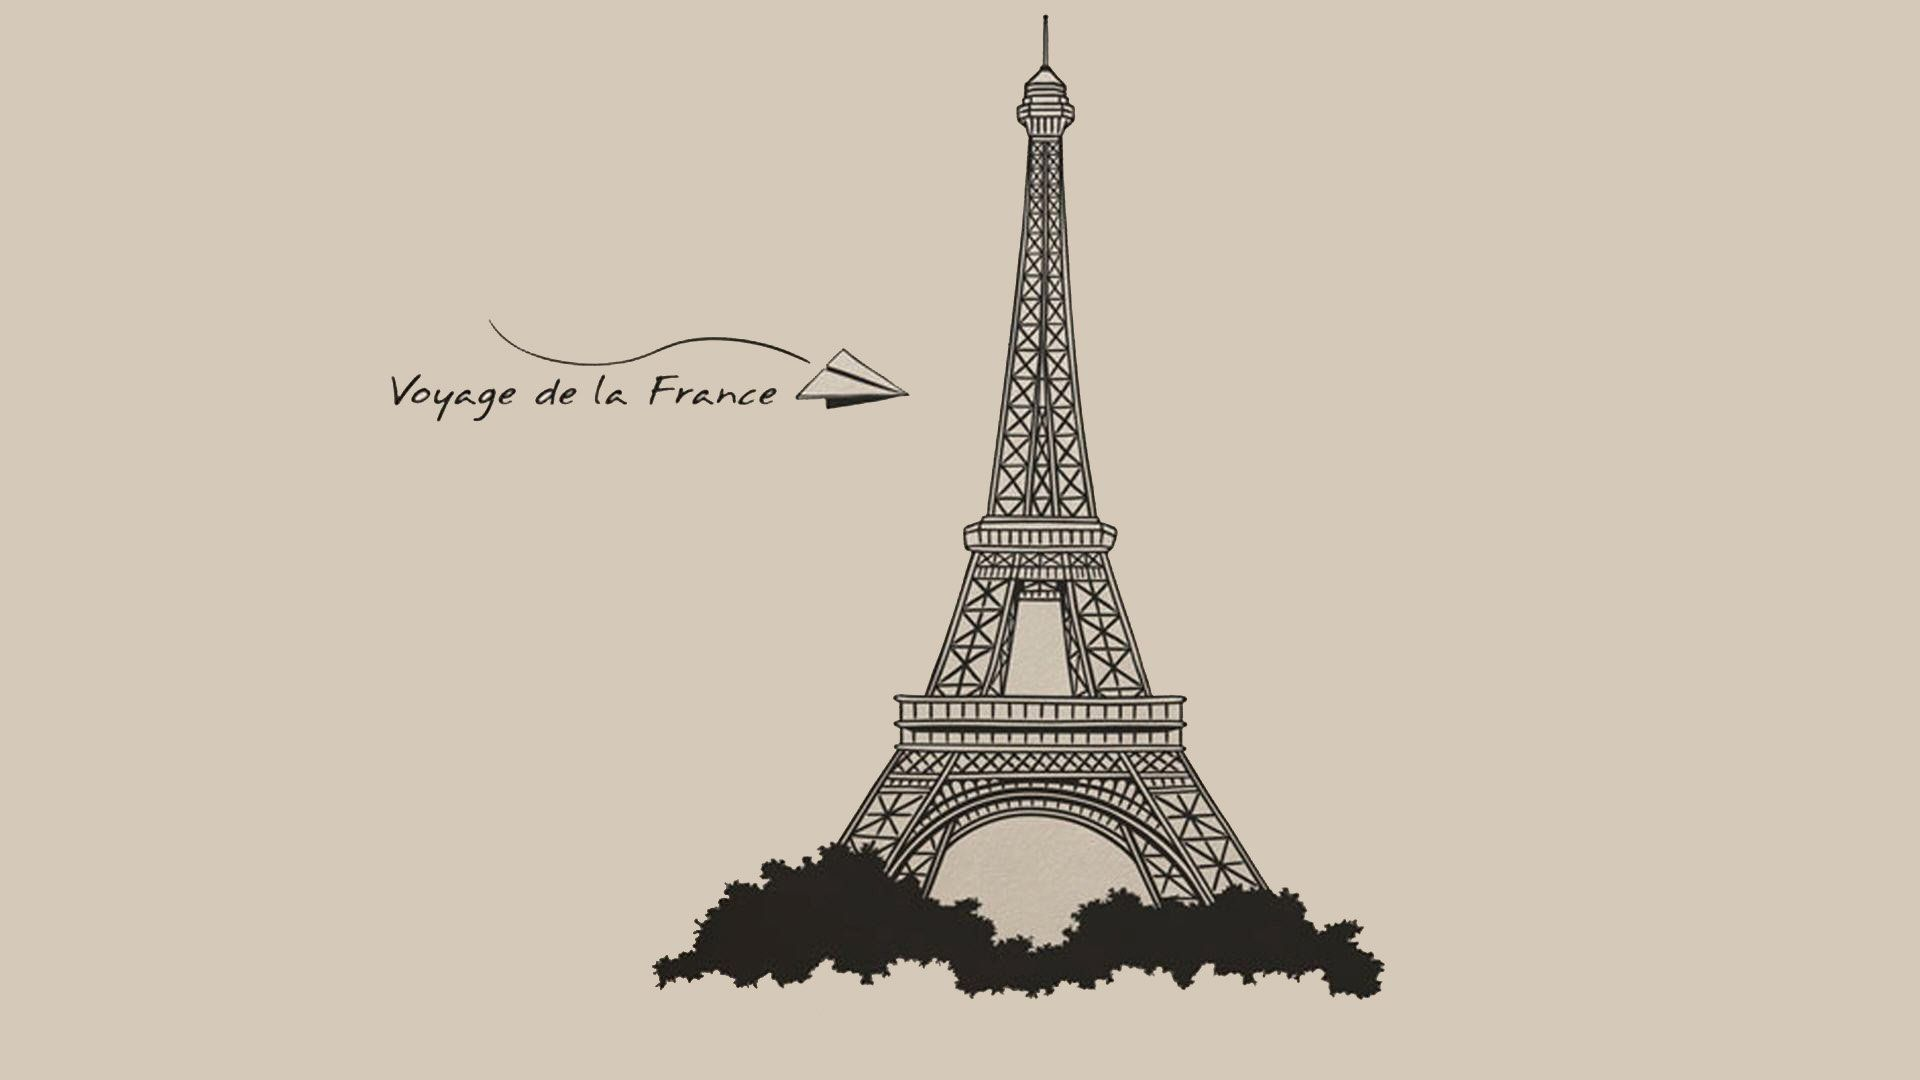 eiffel tower drawing Eiffel tower drawing, Eiffel tower